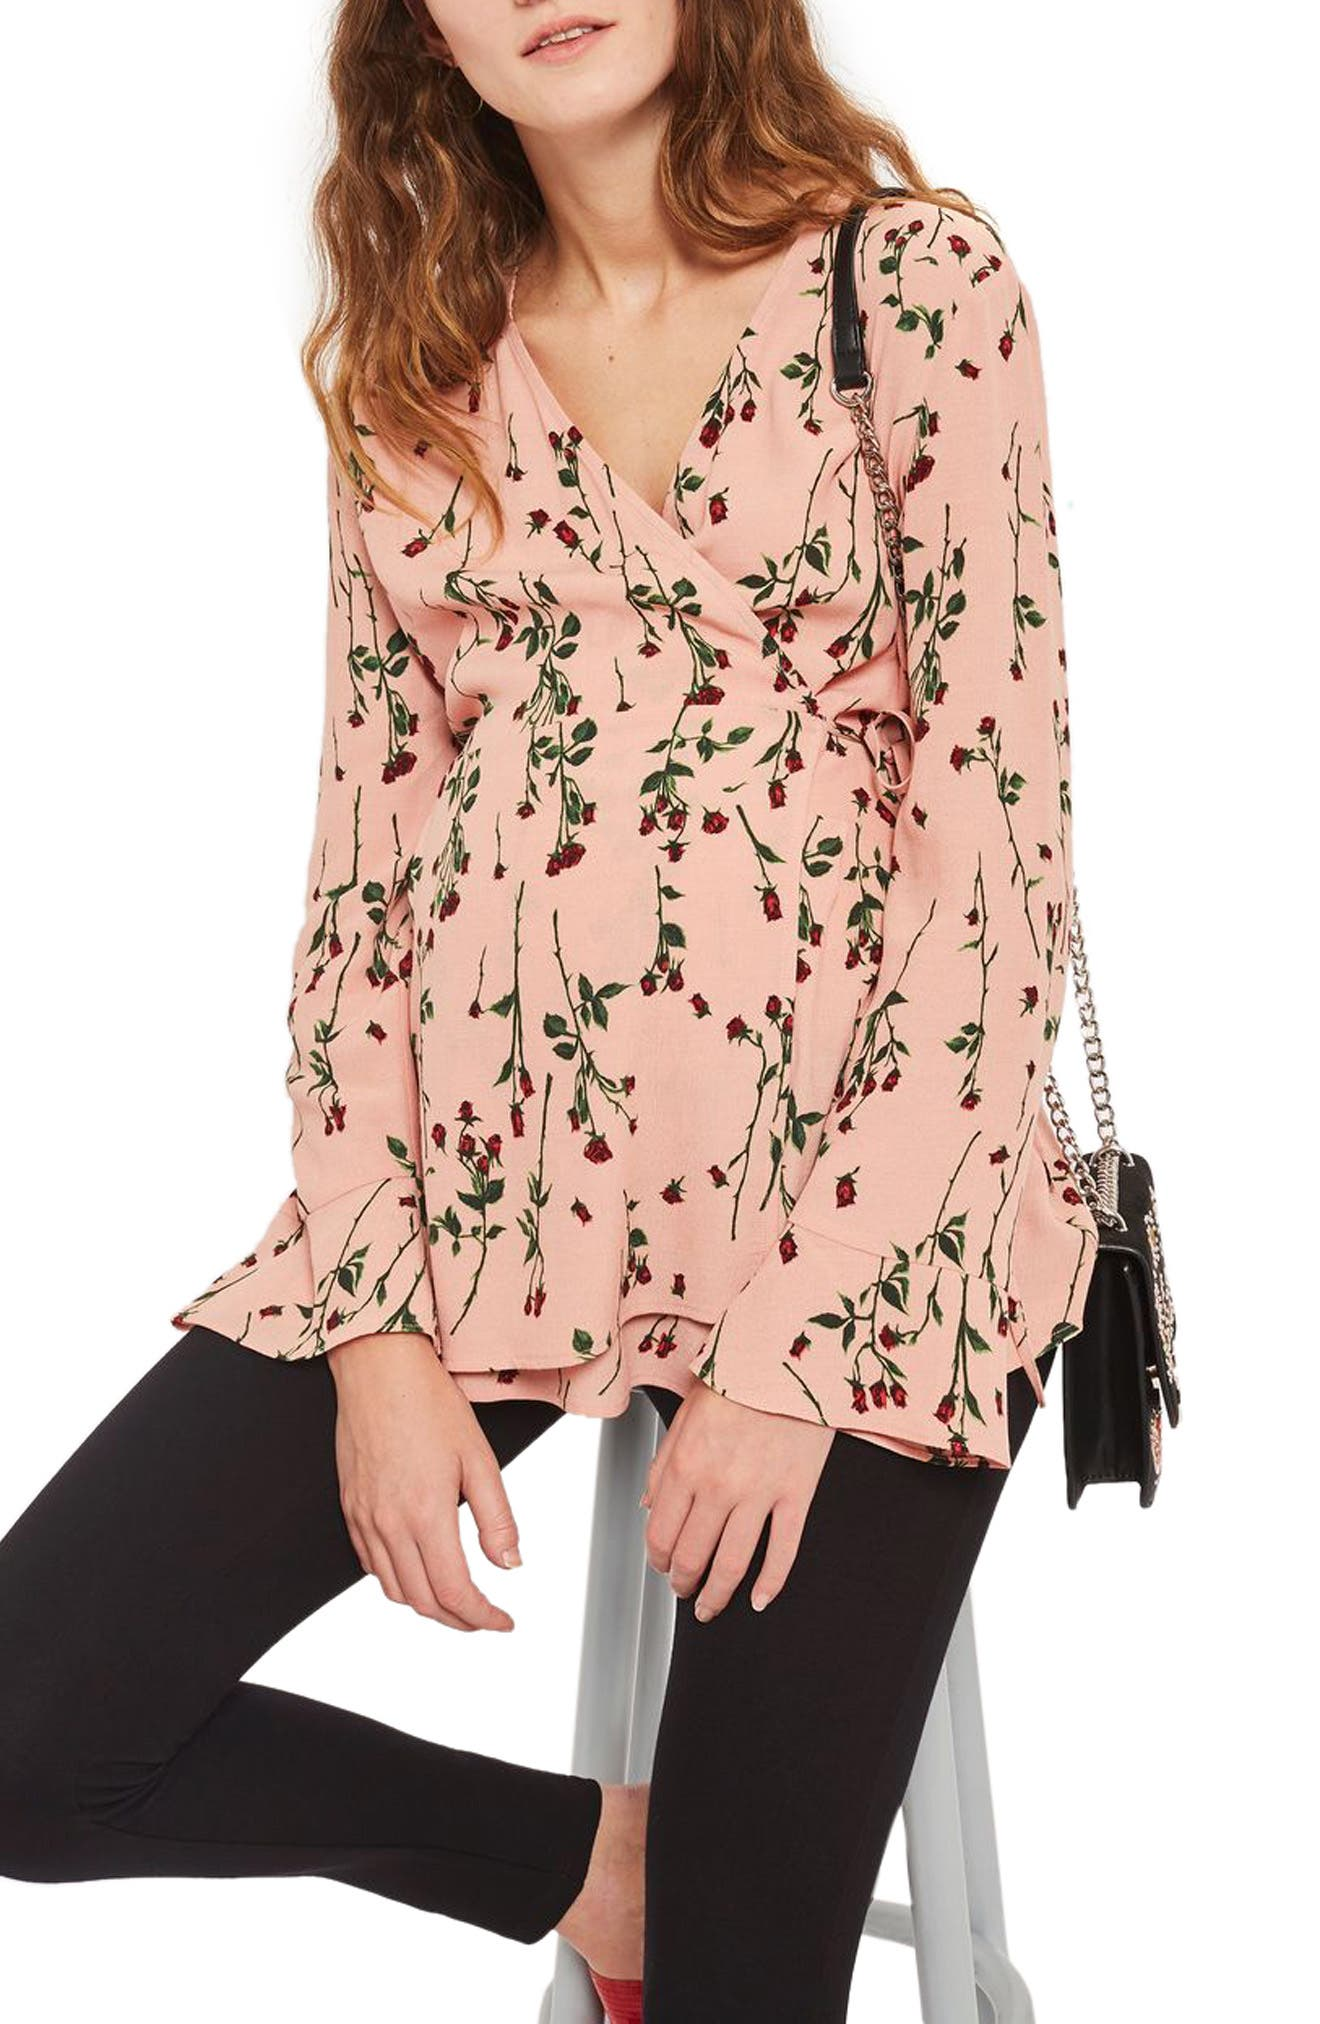 Topshop Rose Bud Wrap Maternity Blouse